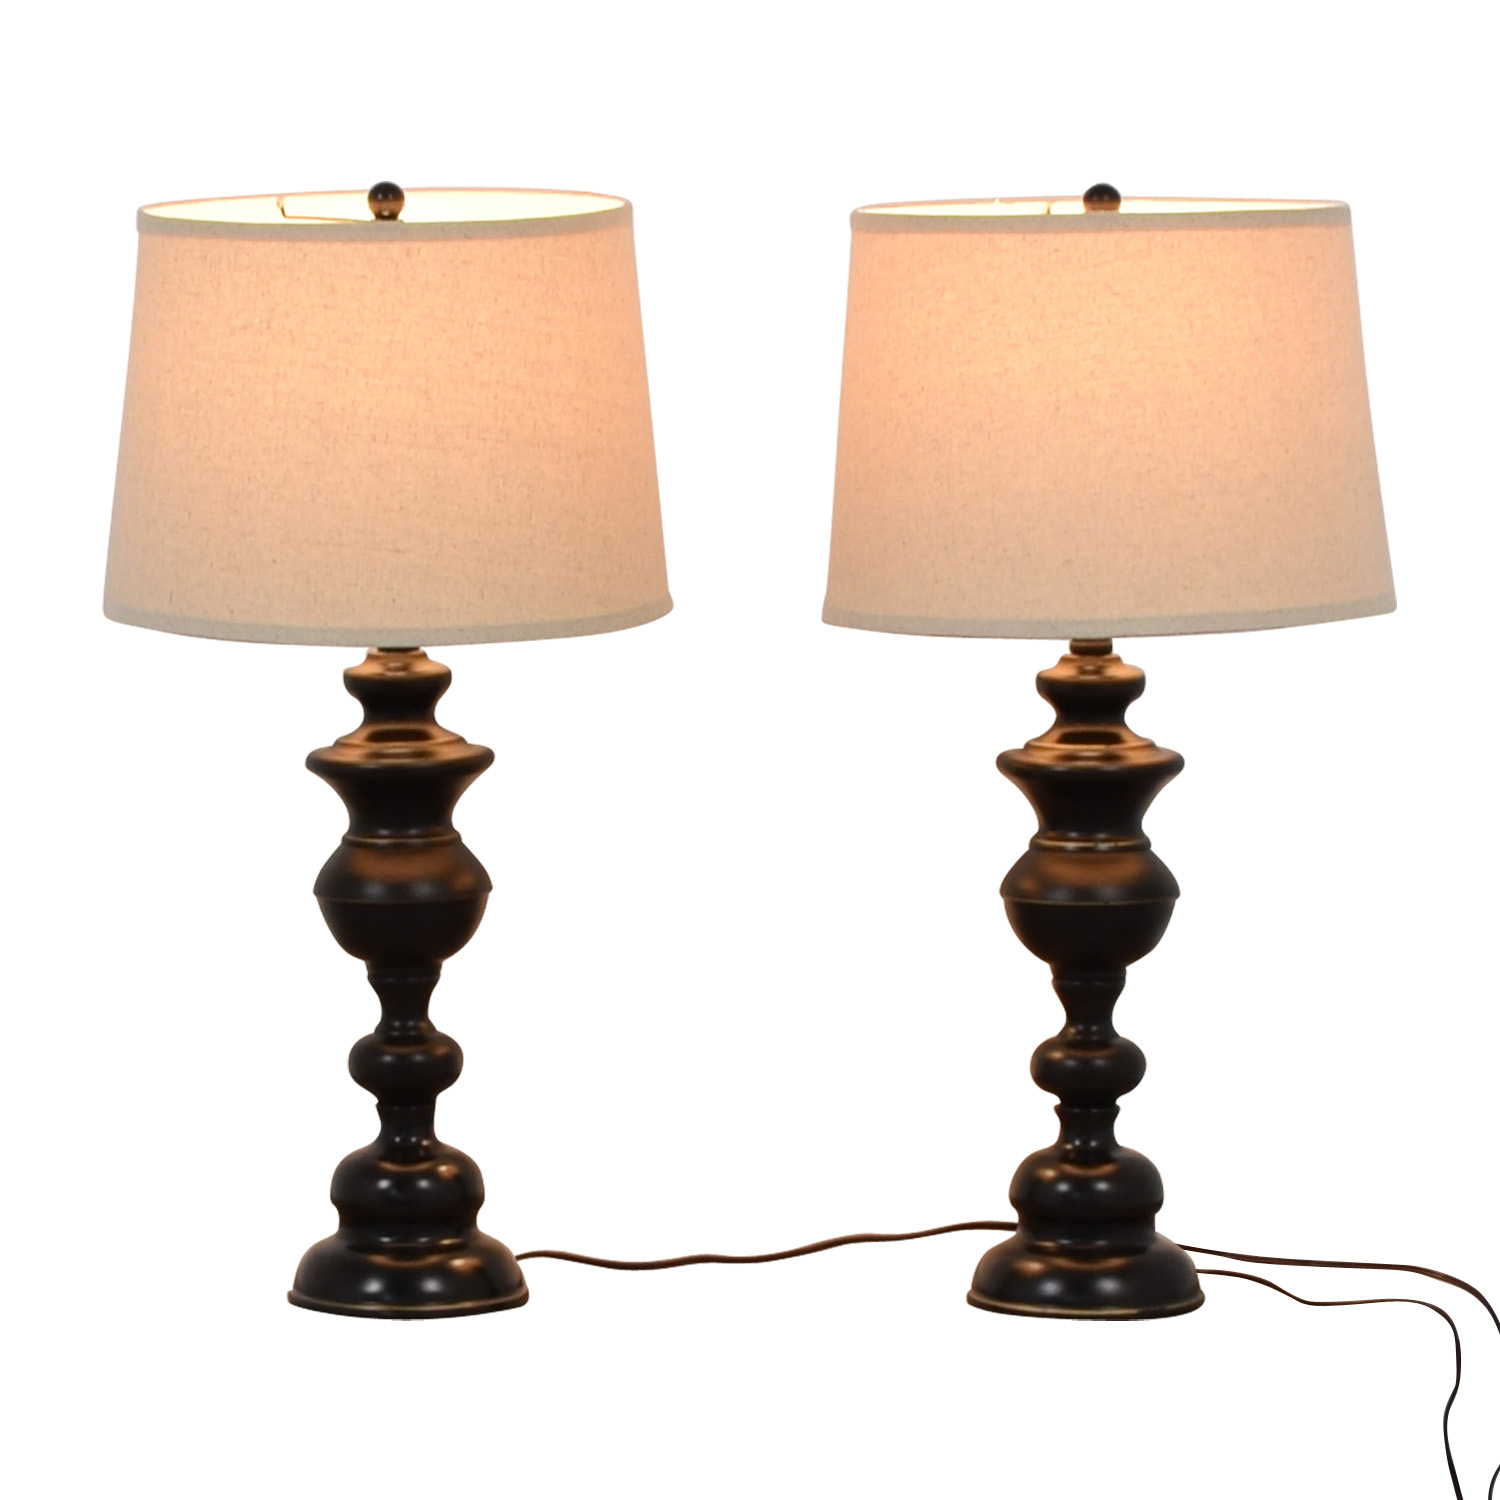 Vintage Black Base Table Lamps used